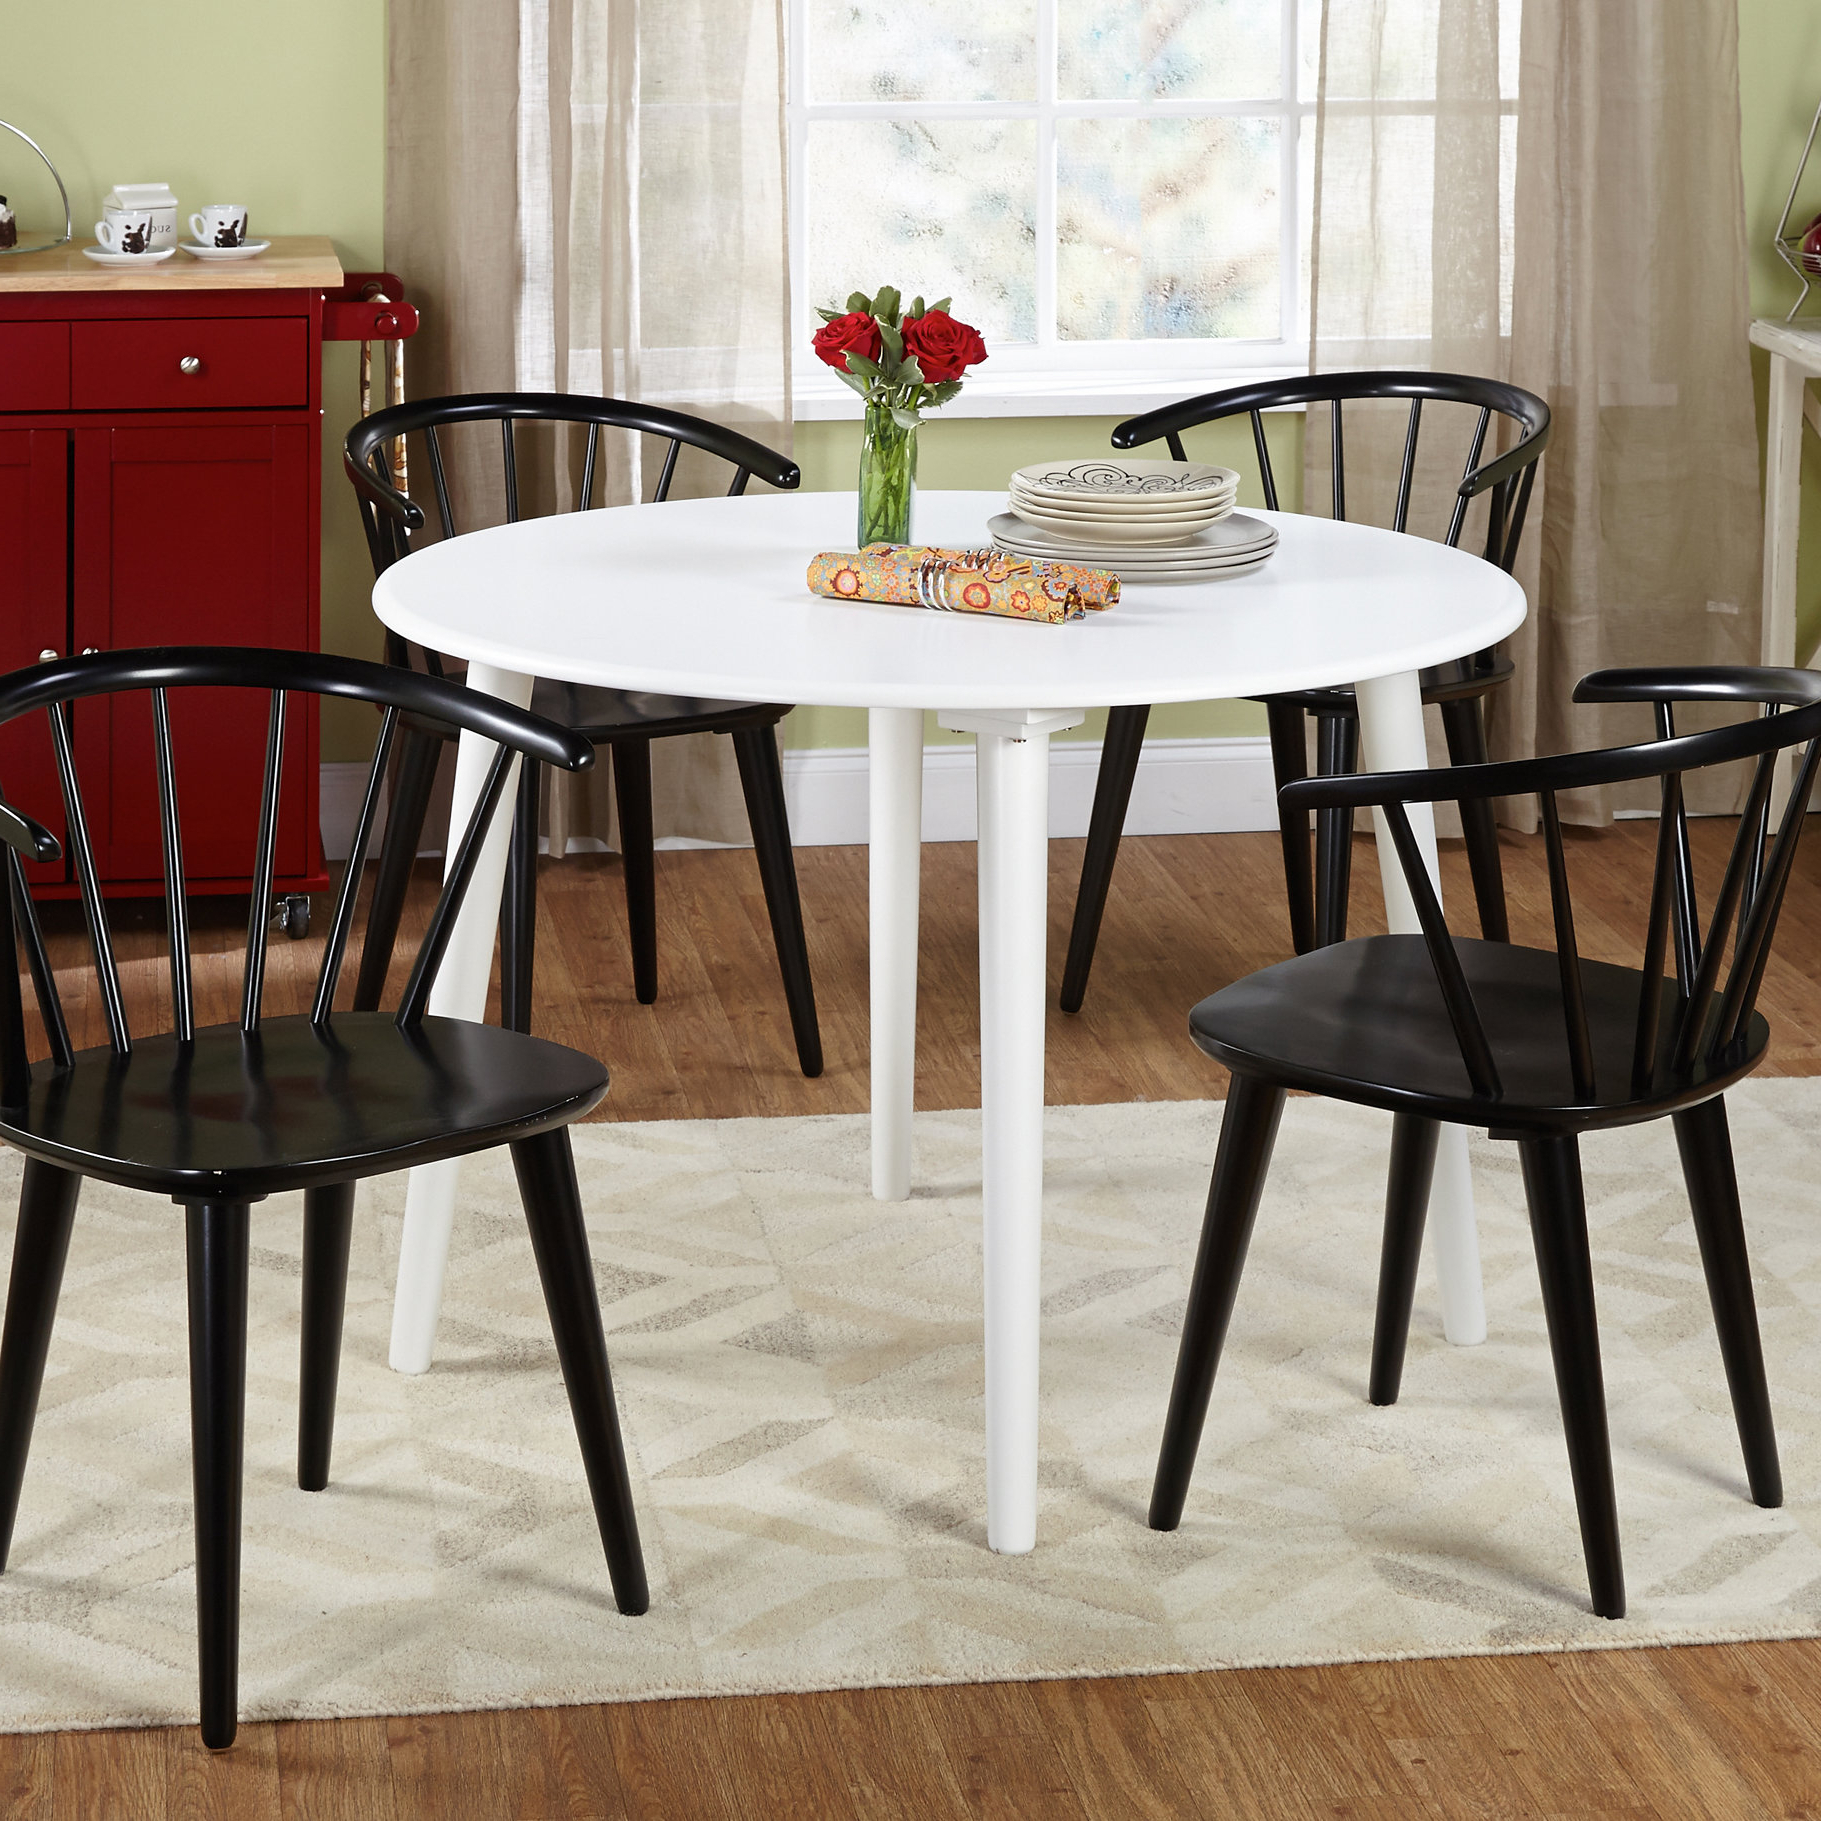 Fashionable Arielle 5 Piece Wood Dining Set With Regard To Tejeda 5 Piece Dining Sets (View 5 of 20)